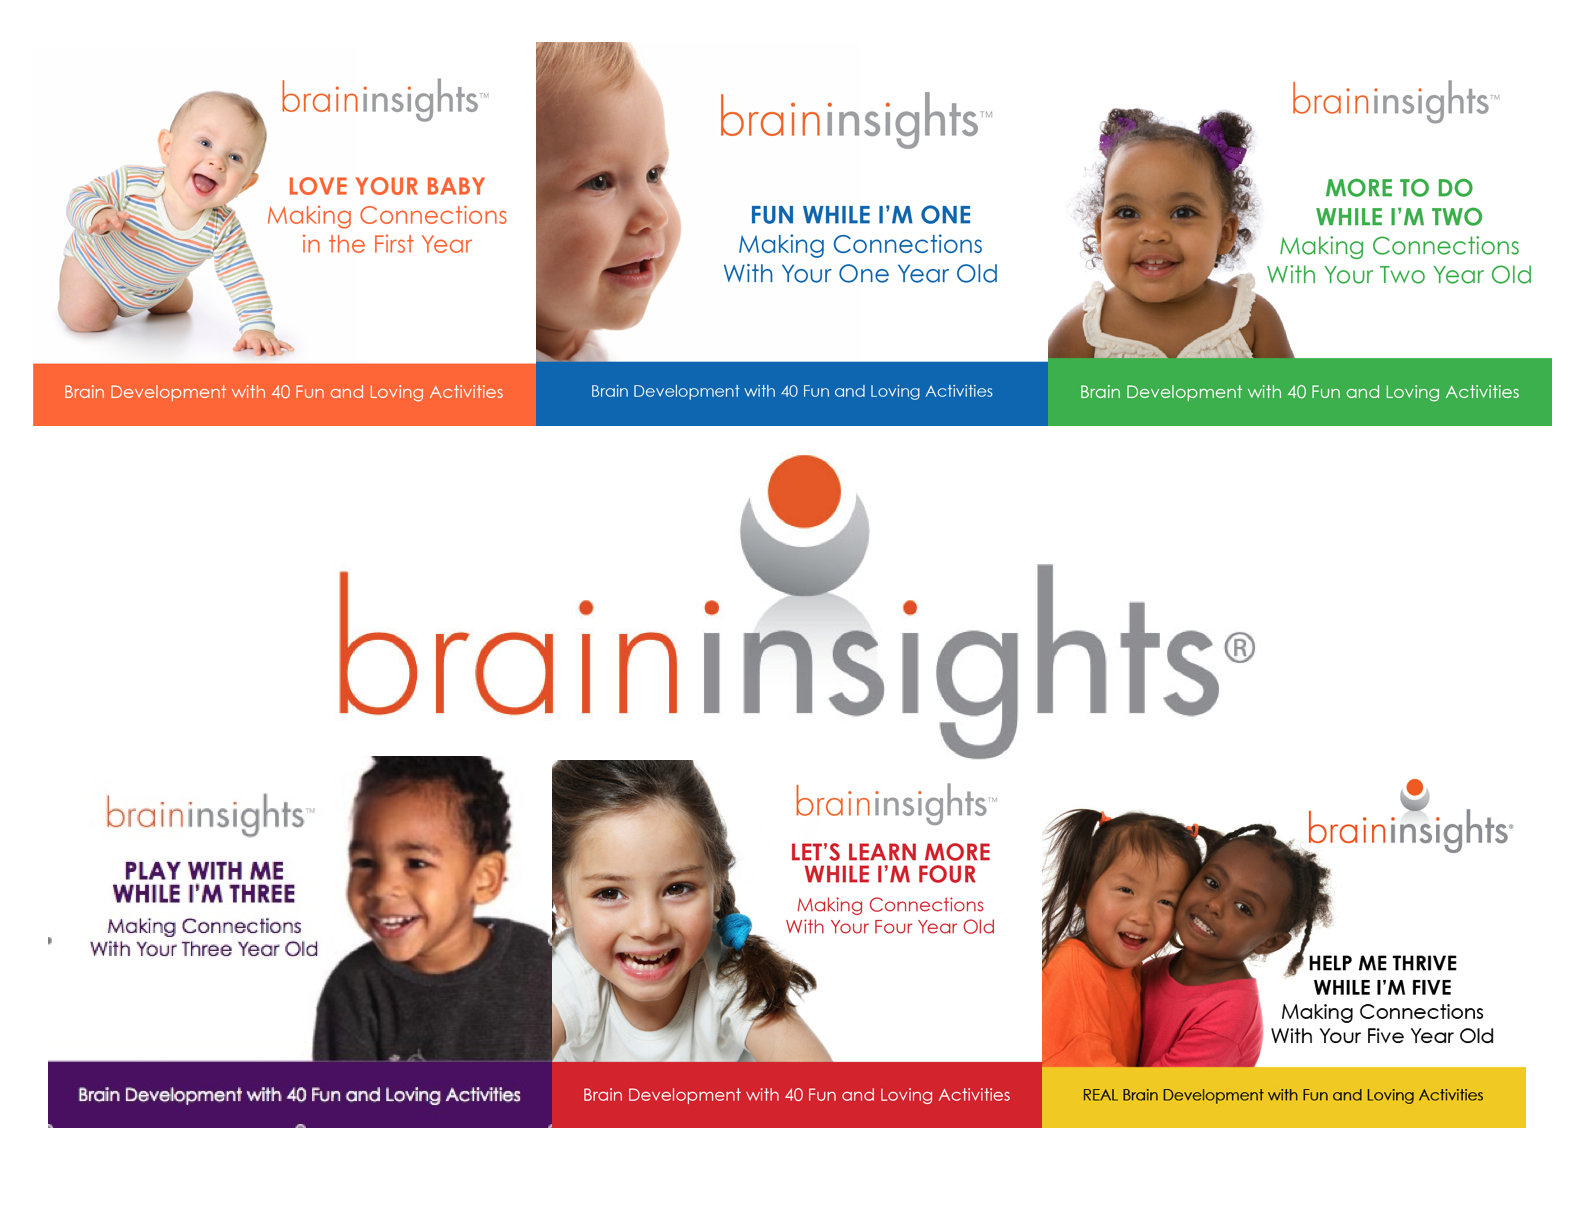 making brain development fun and easy even during your busy life wwwbraininsightsonlinecom